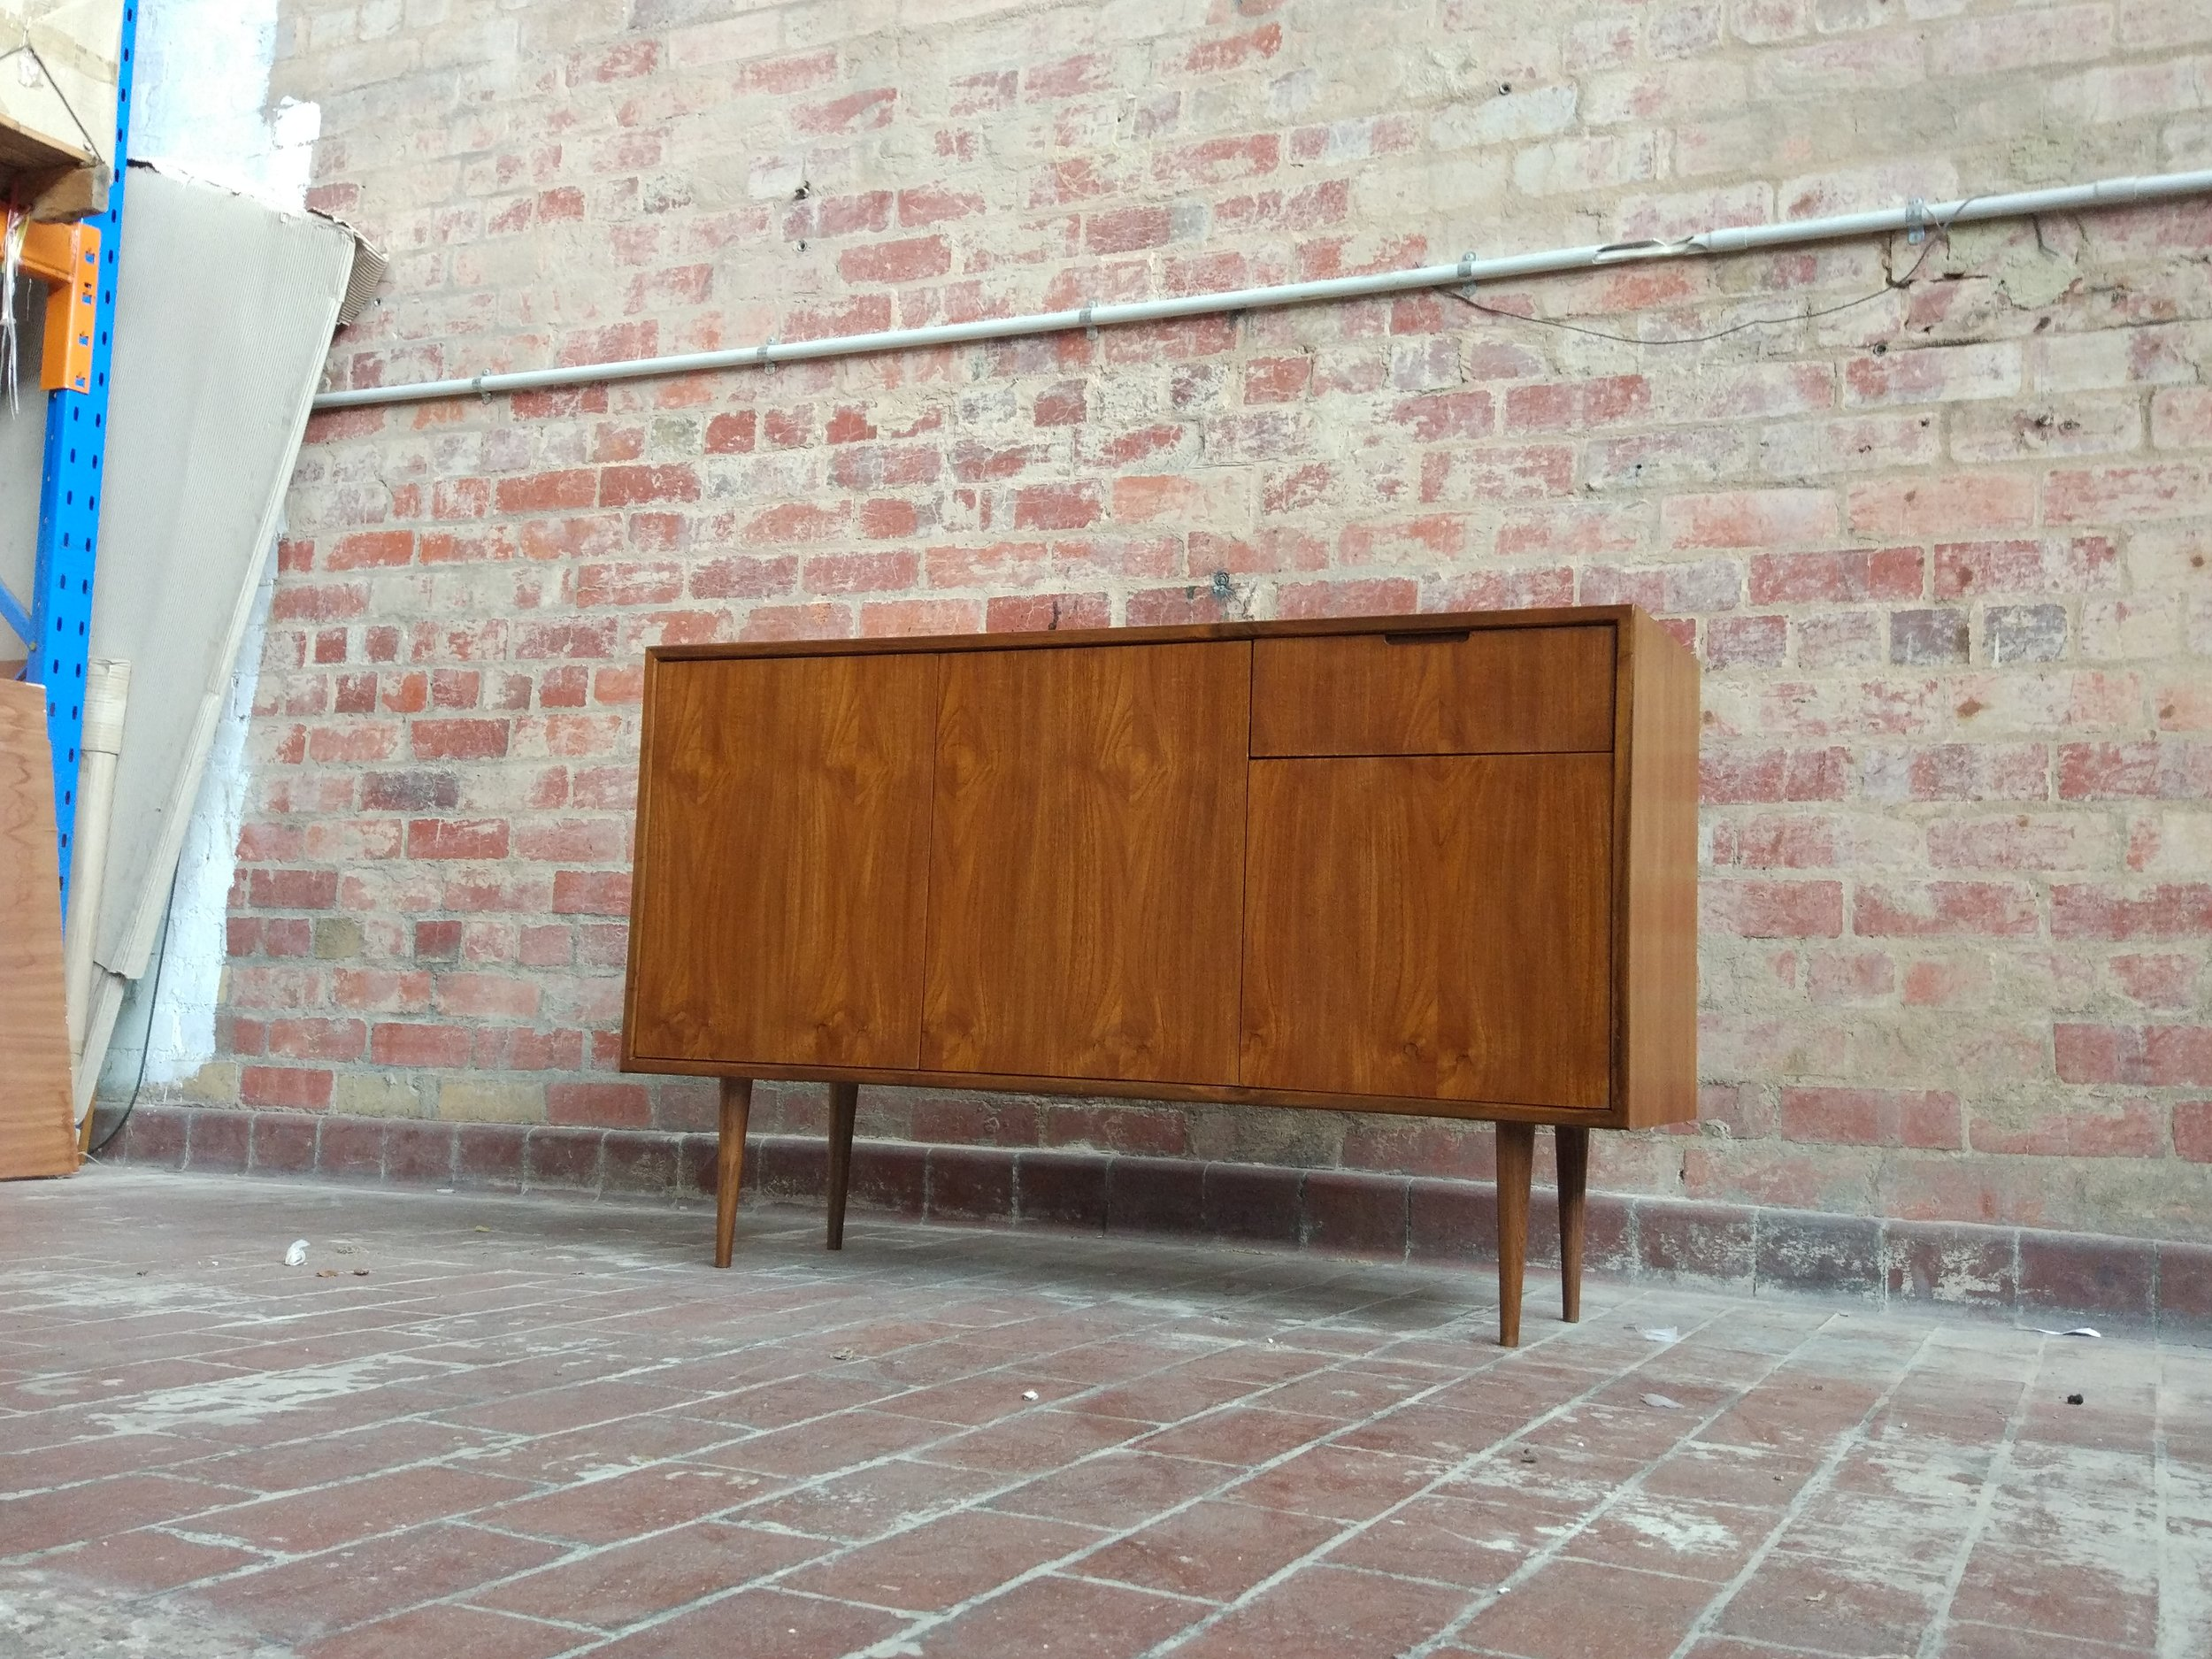 POLISHED TEAK 2 DOOR CABINET